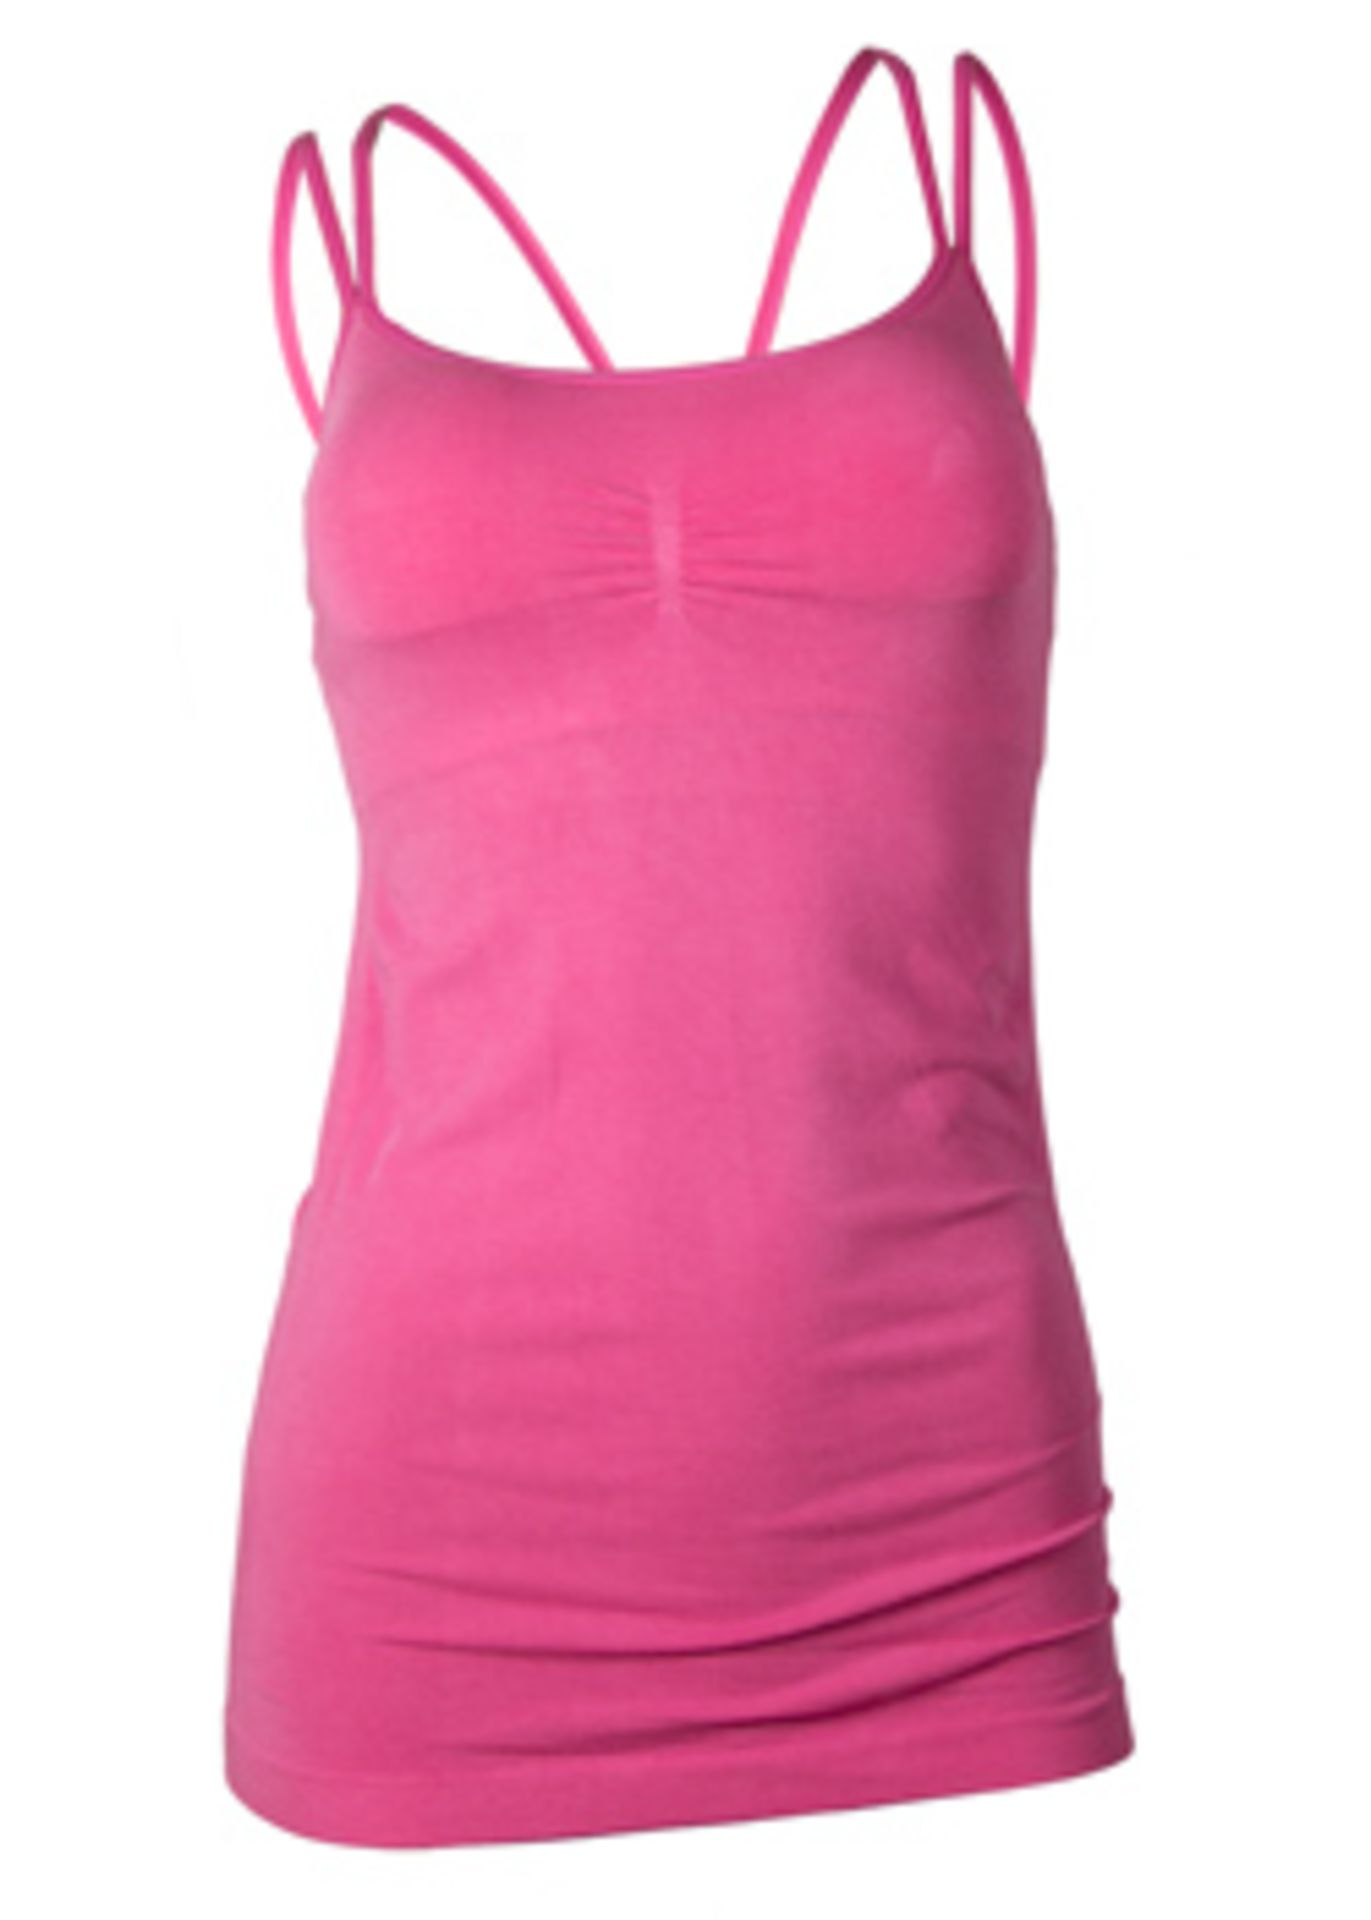 3 x Bamboo Yoga Flow Tops w/ Padded Bra   XS - Image 2 of 4